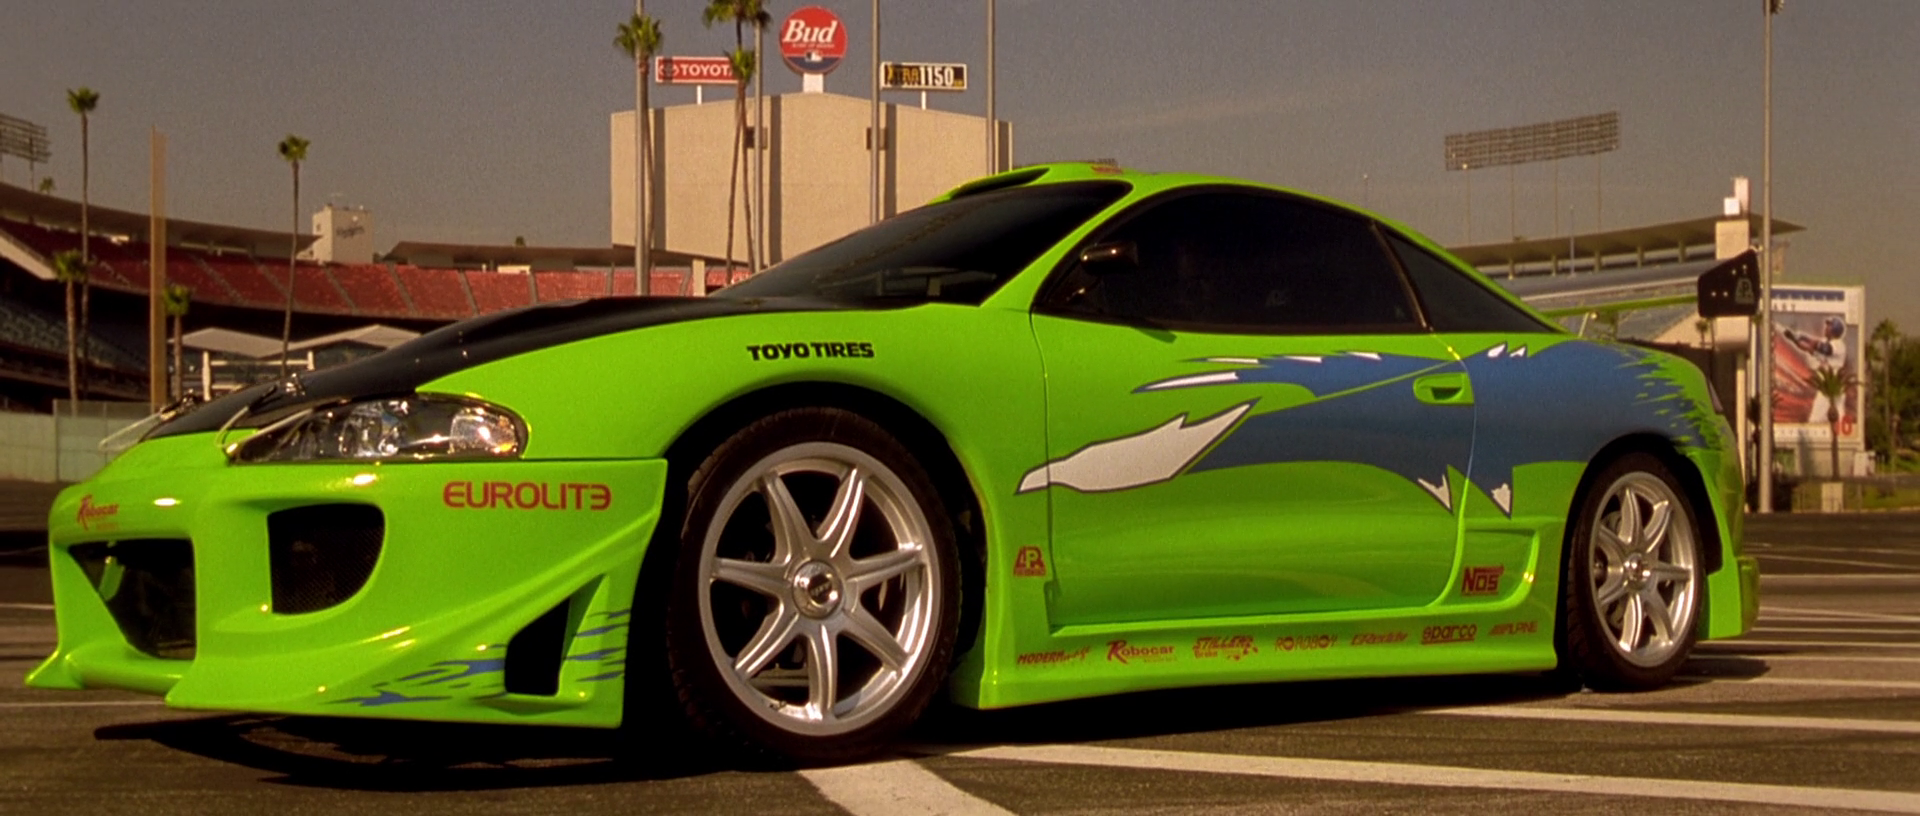 1995 mitsubishi eclipse the fast and the furious wiki fandom 1995 mitsubishi eclipse the fast and